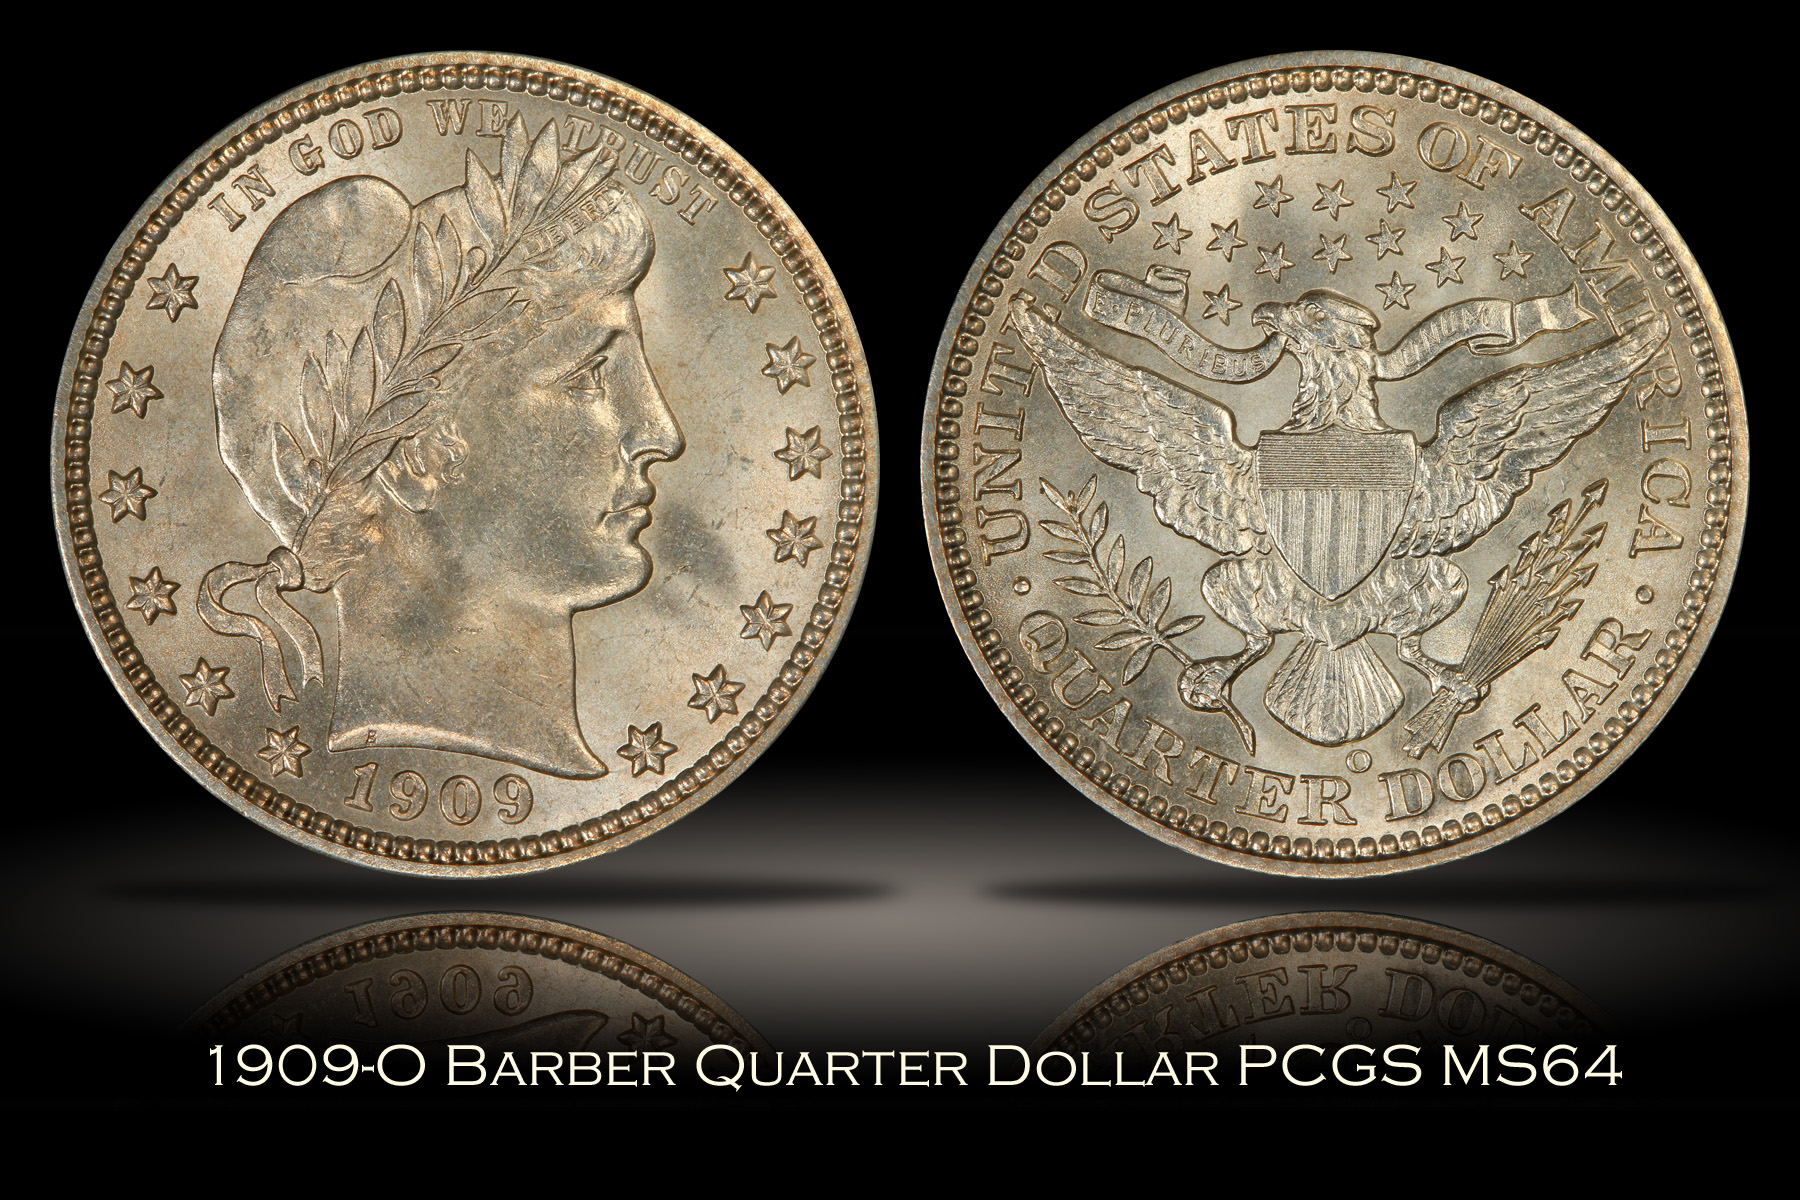 1909-O Barber Quarter PCGS MS64